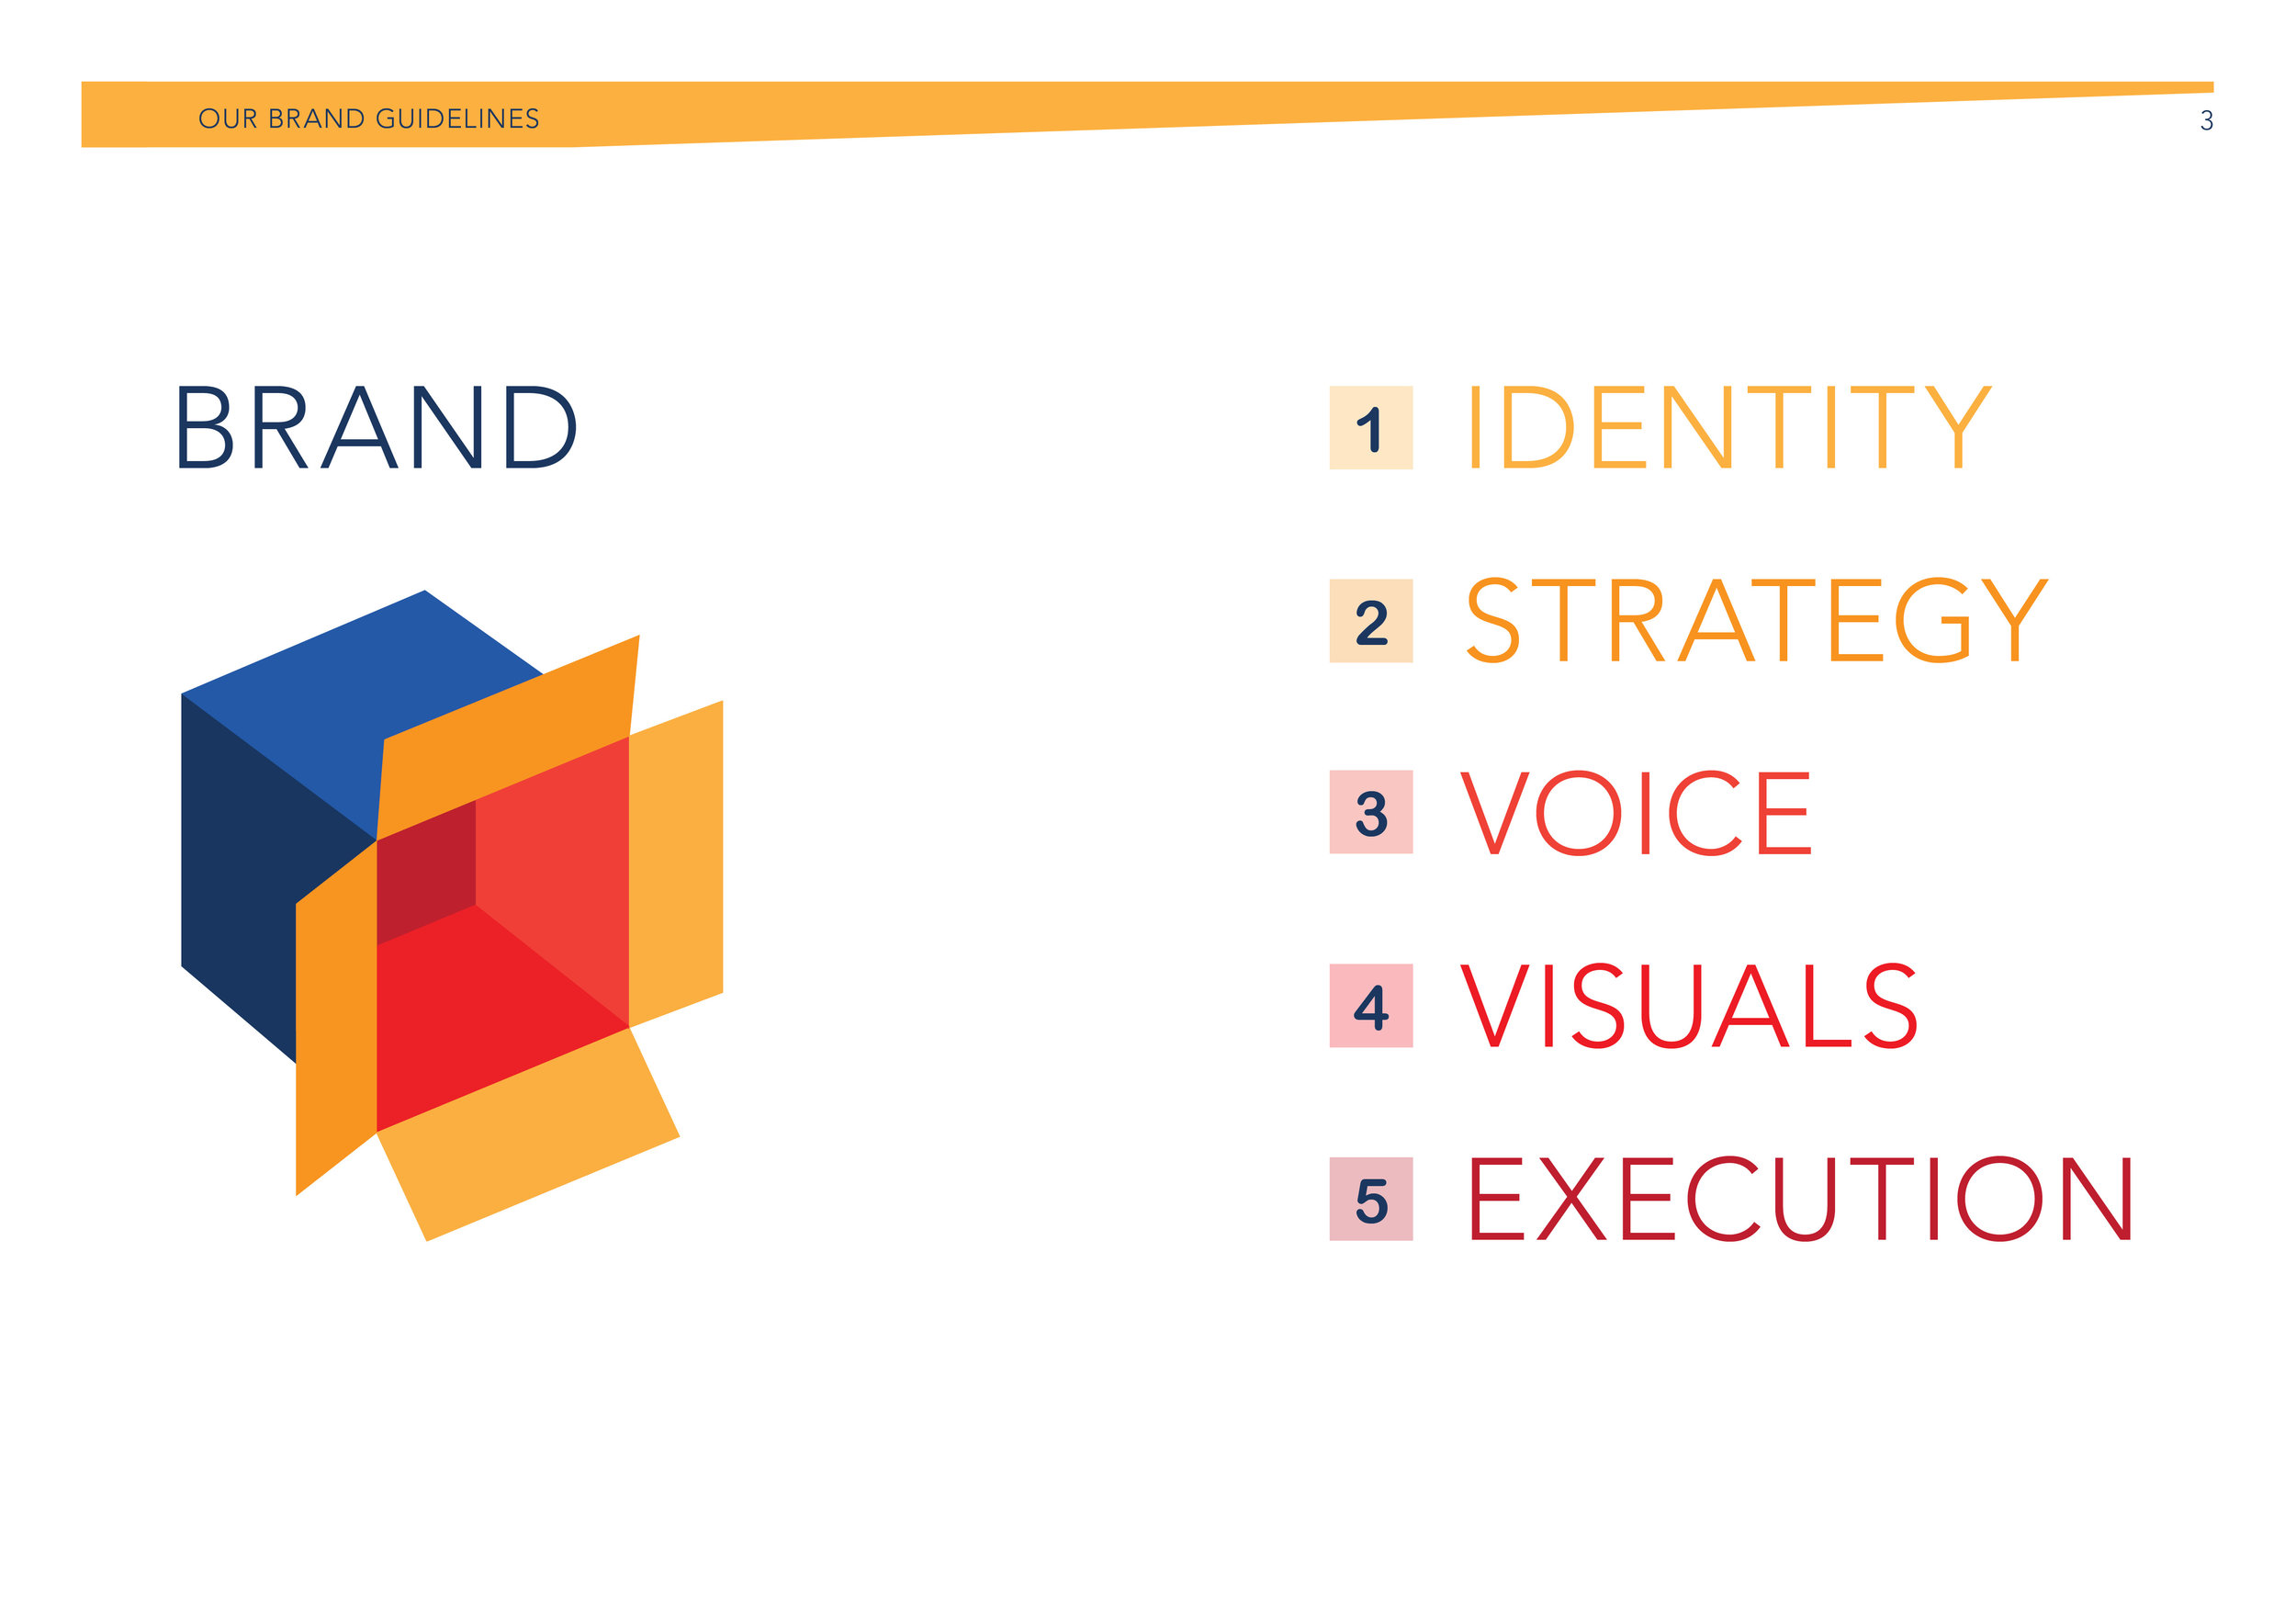 Unbox-it Brand Guidelines2.jpg